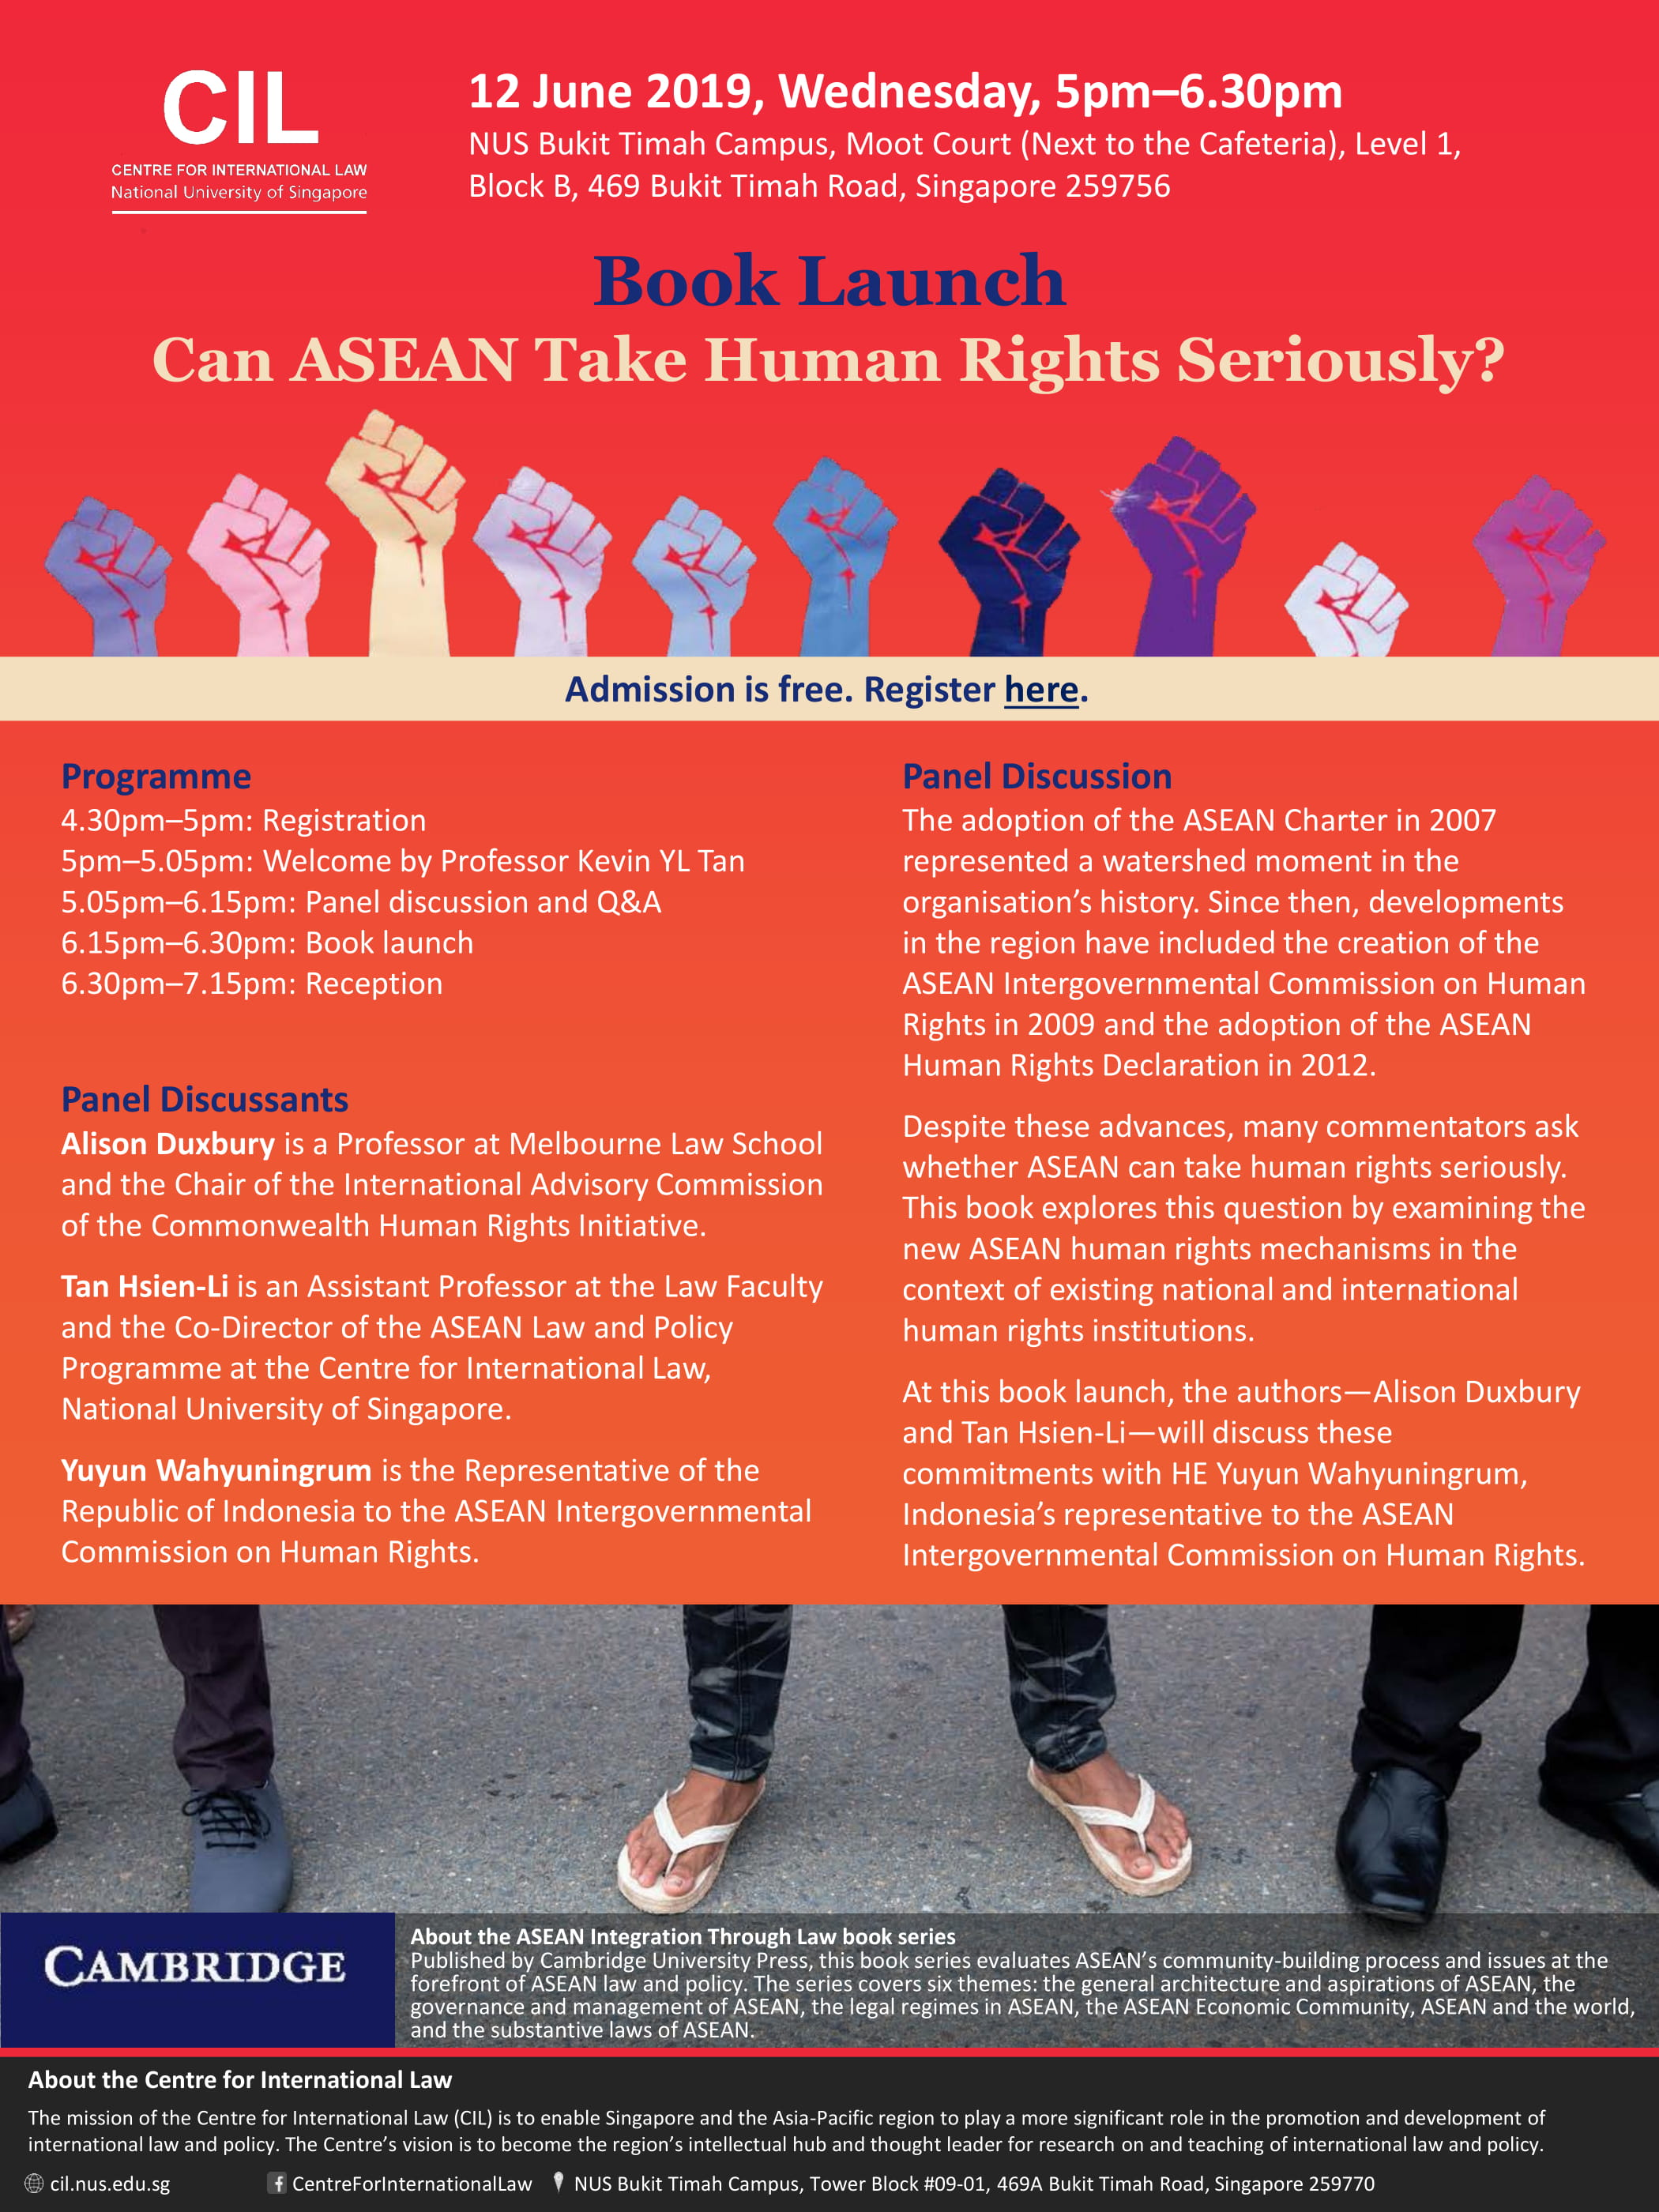 Book Launch: Can ASEAN Take Human Rights Seriously? - Centre